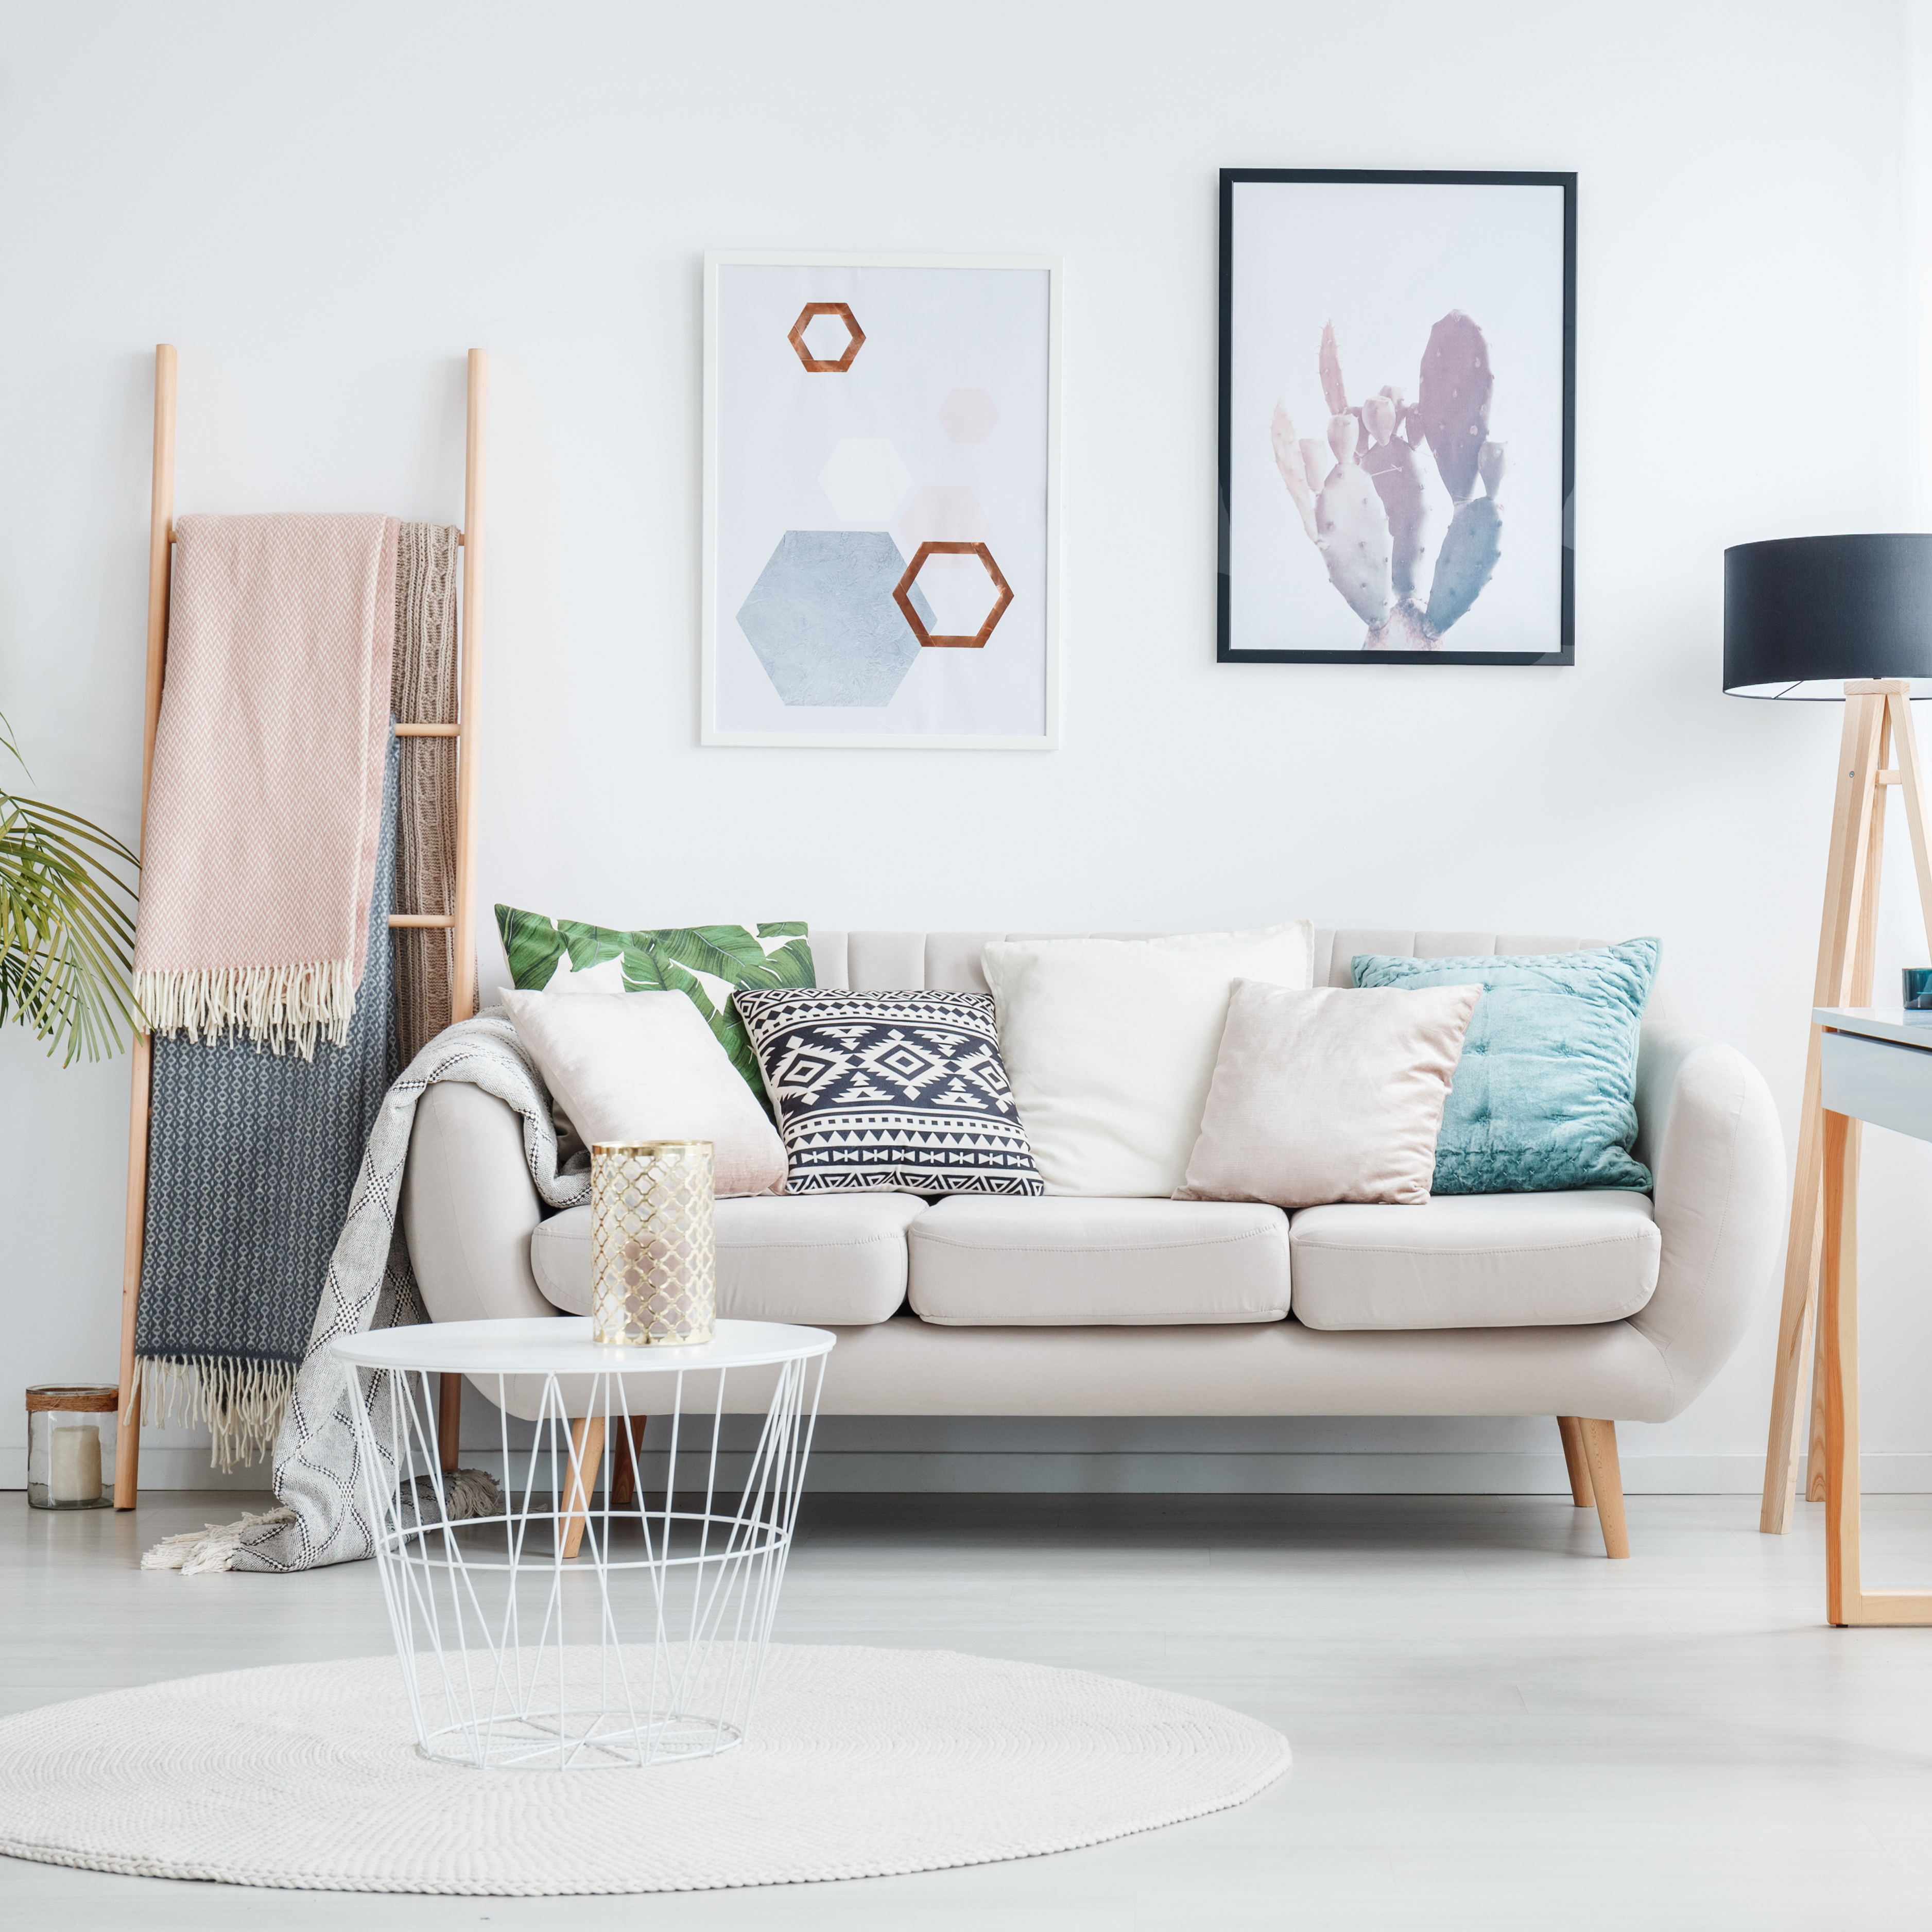 5 Home Décor Trends That Will Never Go Out Of Style